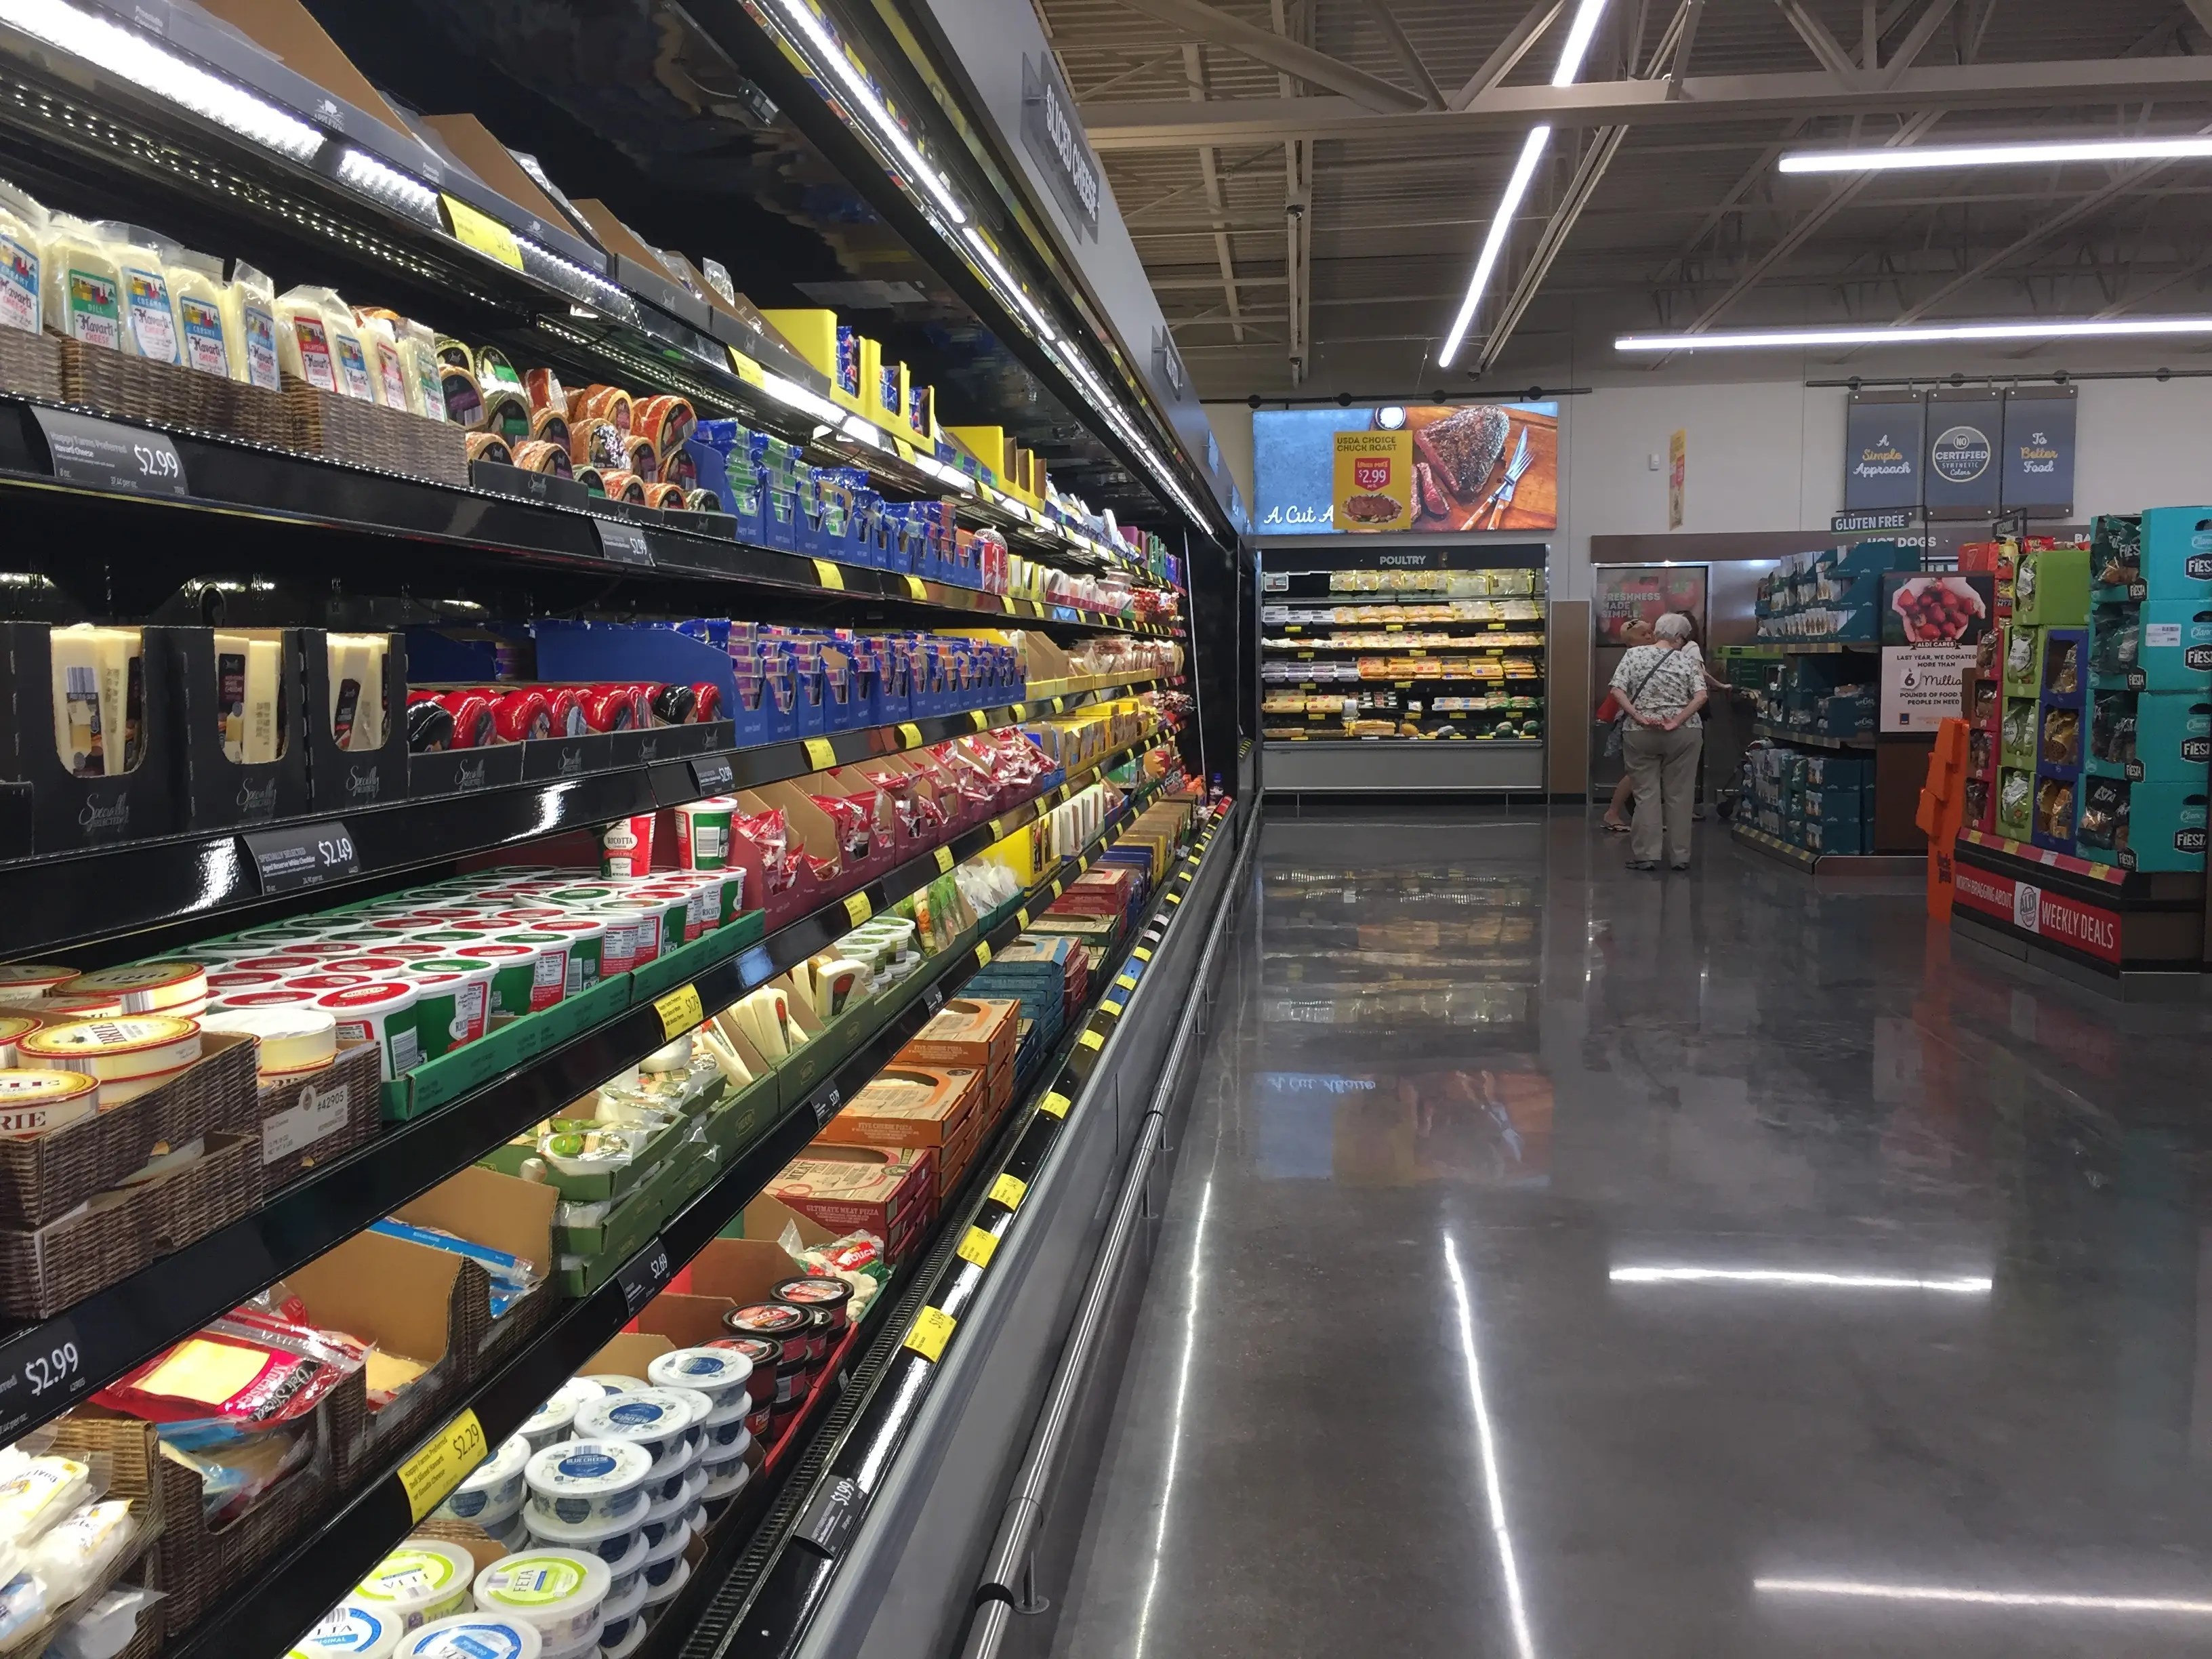 Like at 365 by Whole Foods, there's no deli at the Aldi store, but there are tons of packaged cheeses and meats to choose from.